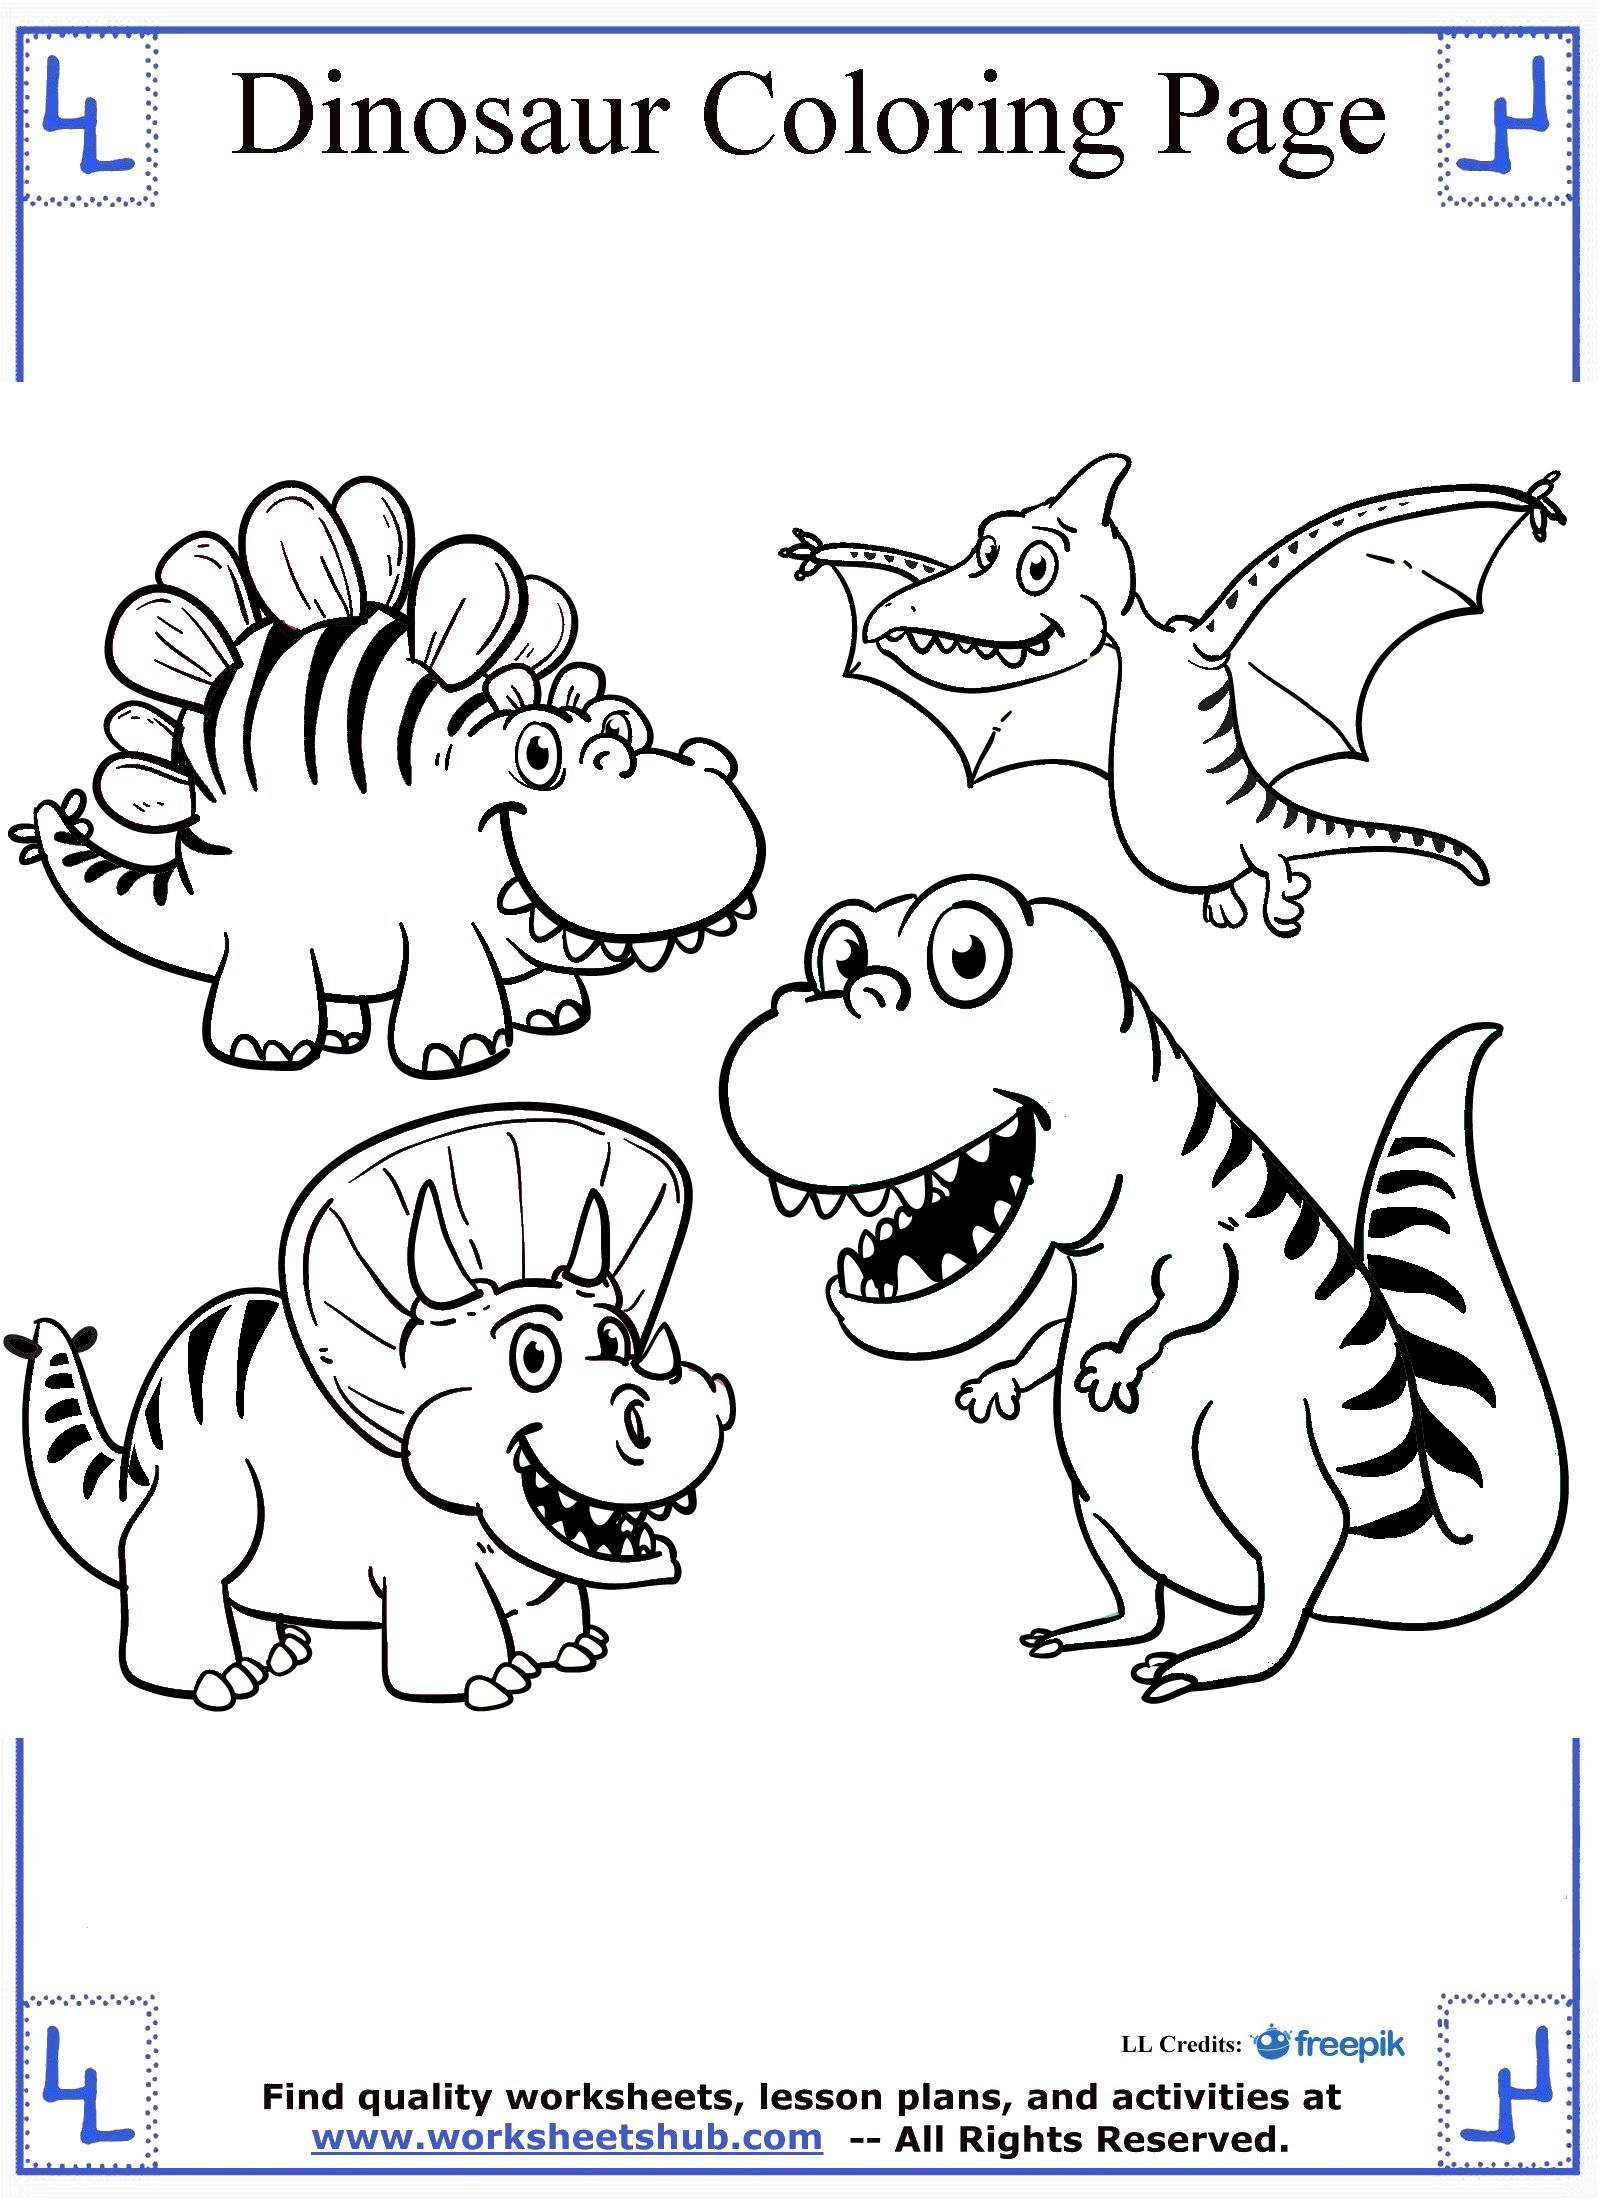 dinosaur coloring pages. Black Bedroom Furniture Sets. Home Design Ideas